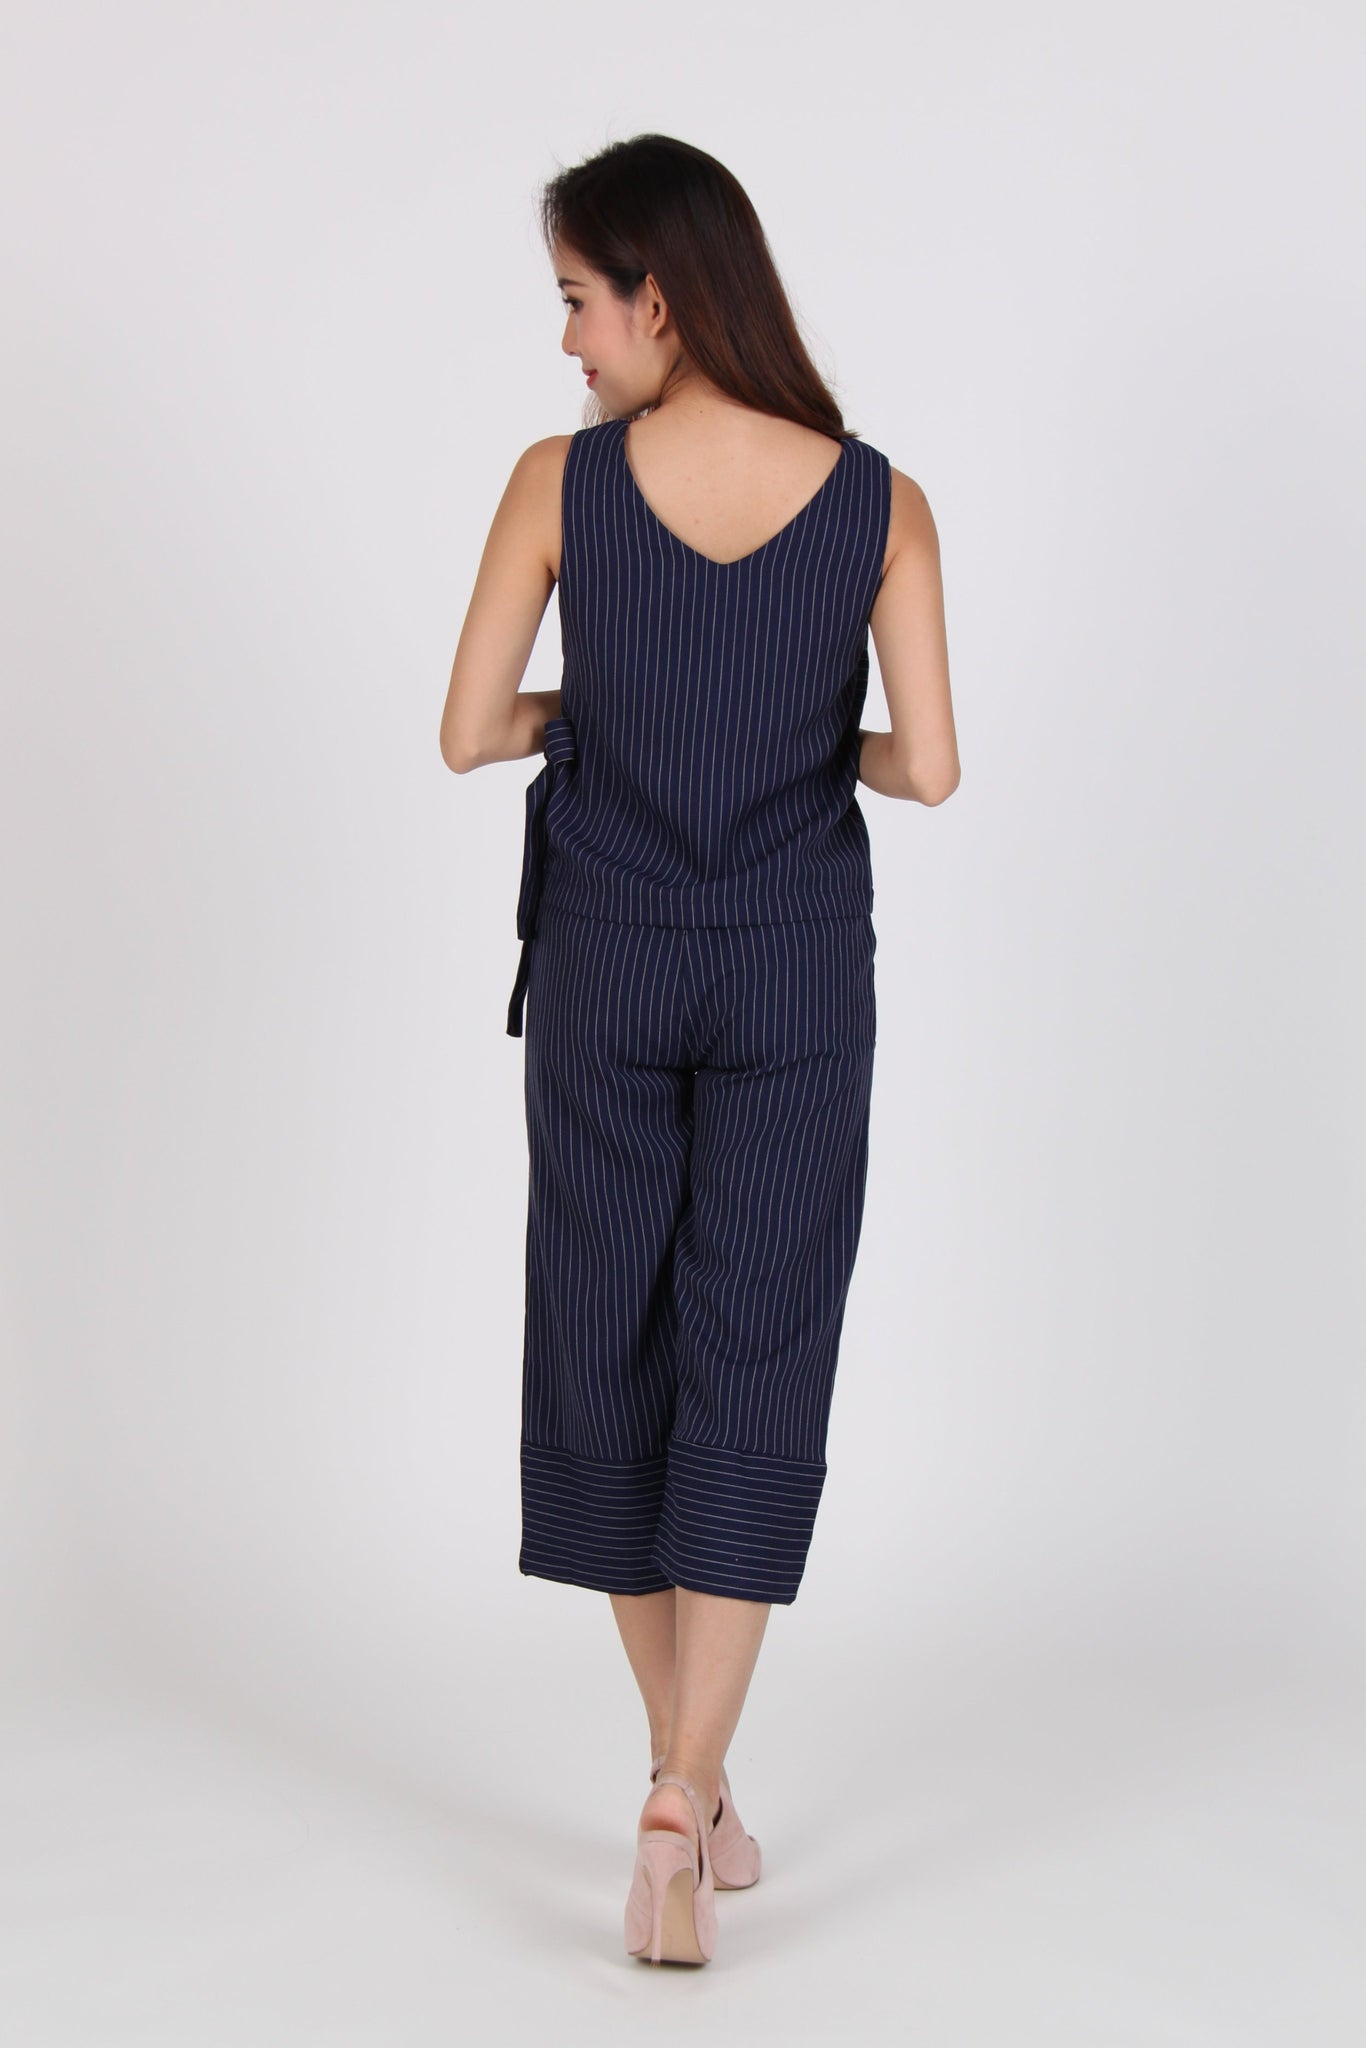 2 Piece Pinstripe Side Overlap Top with Culottes in Navy Blue